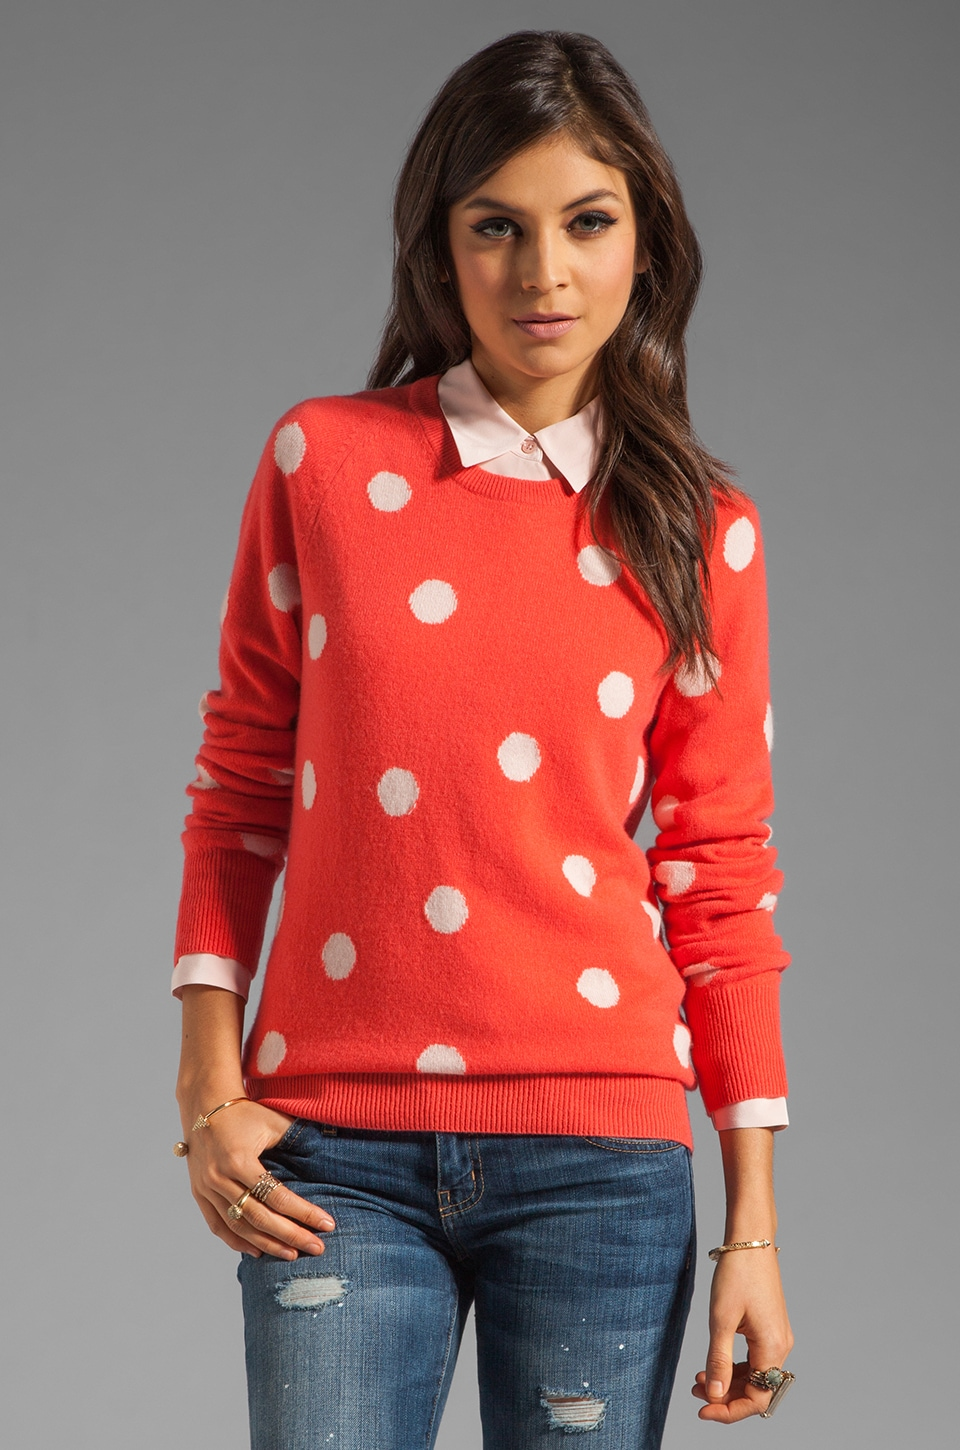 Equipment Sloane Classic Dots Crew Neck Sweater in Cayenne